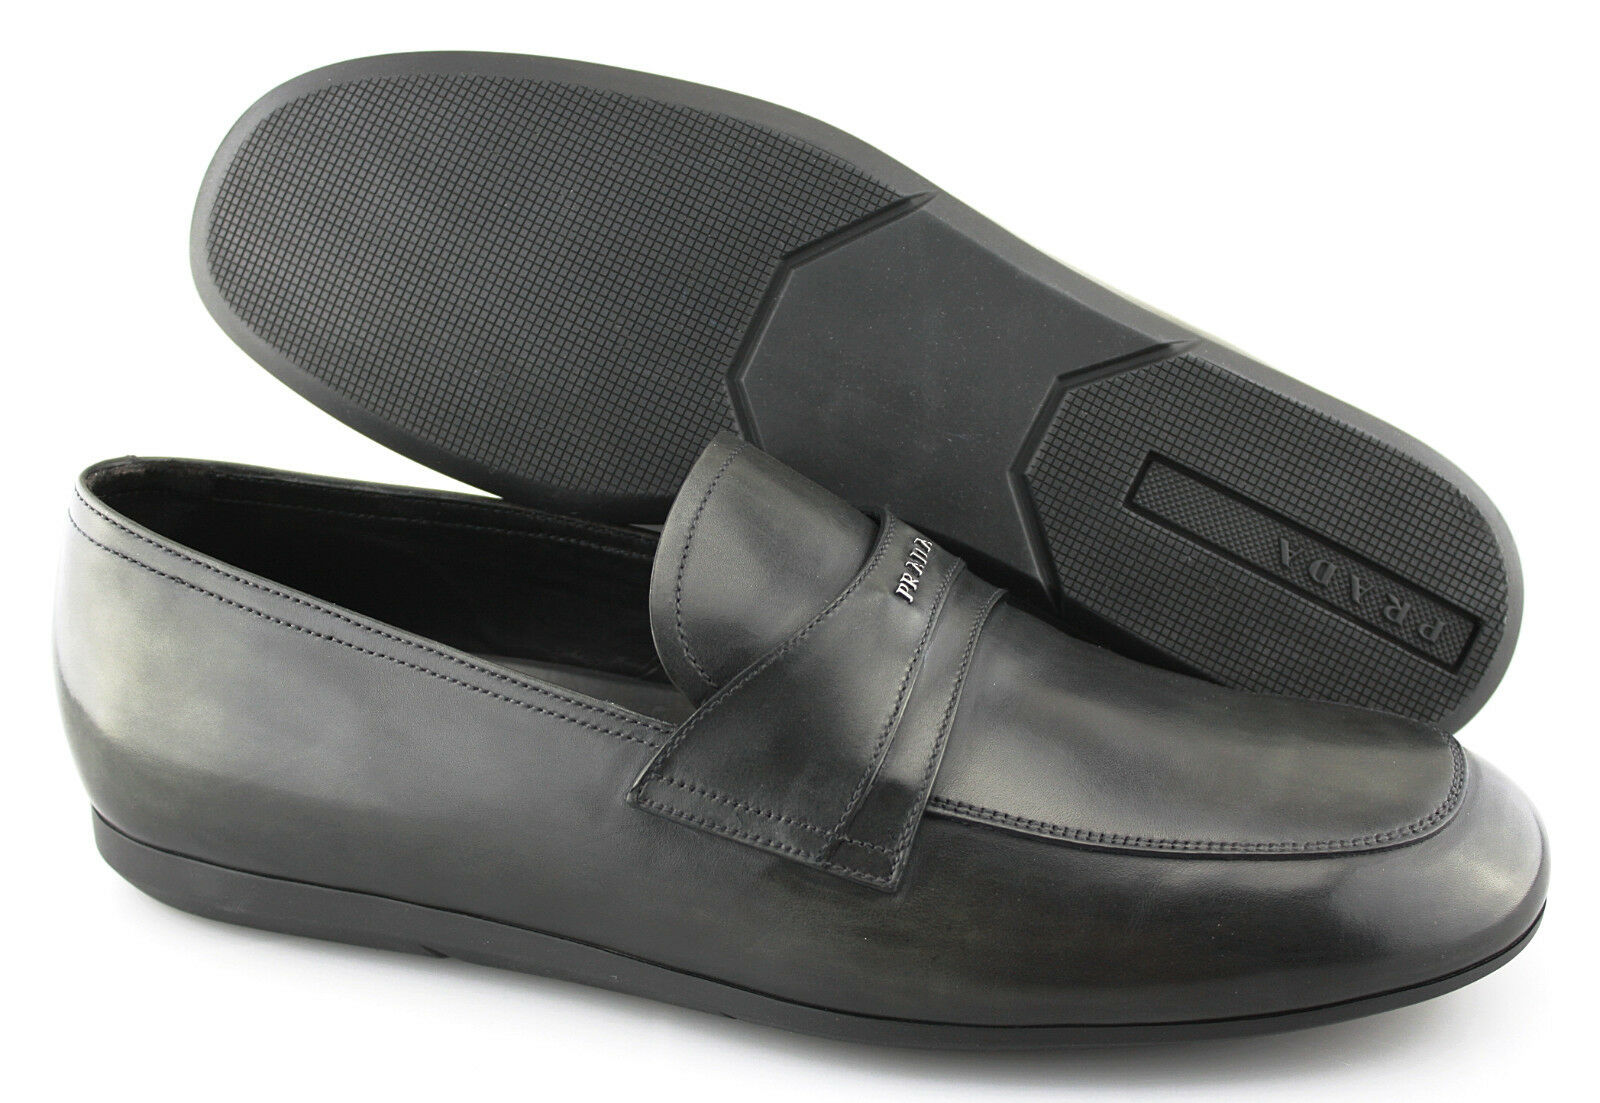 Men's PRADA 'Milano' Charcoal grigio Leather Loafers Dimensione US 11 PRADA 10